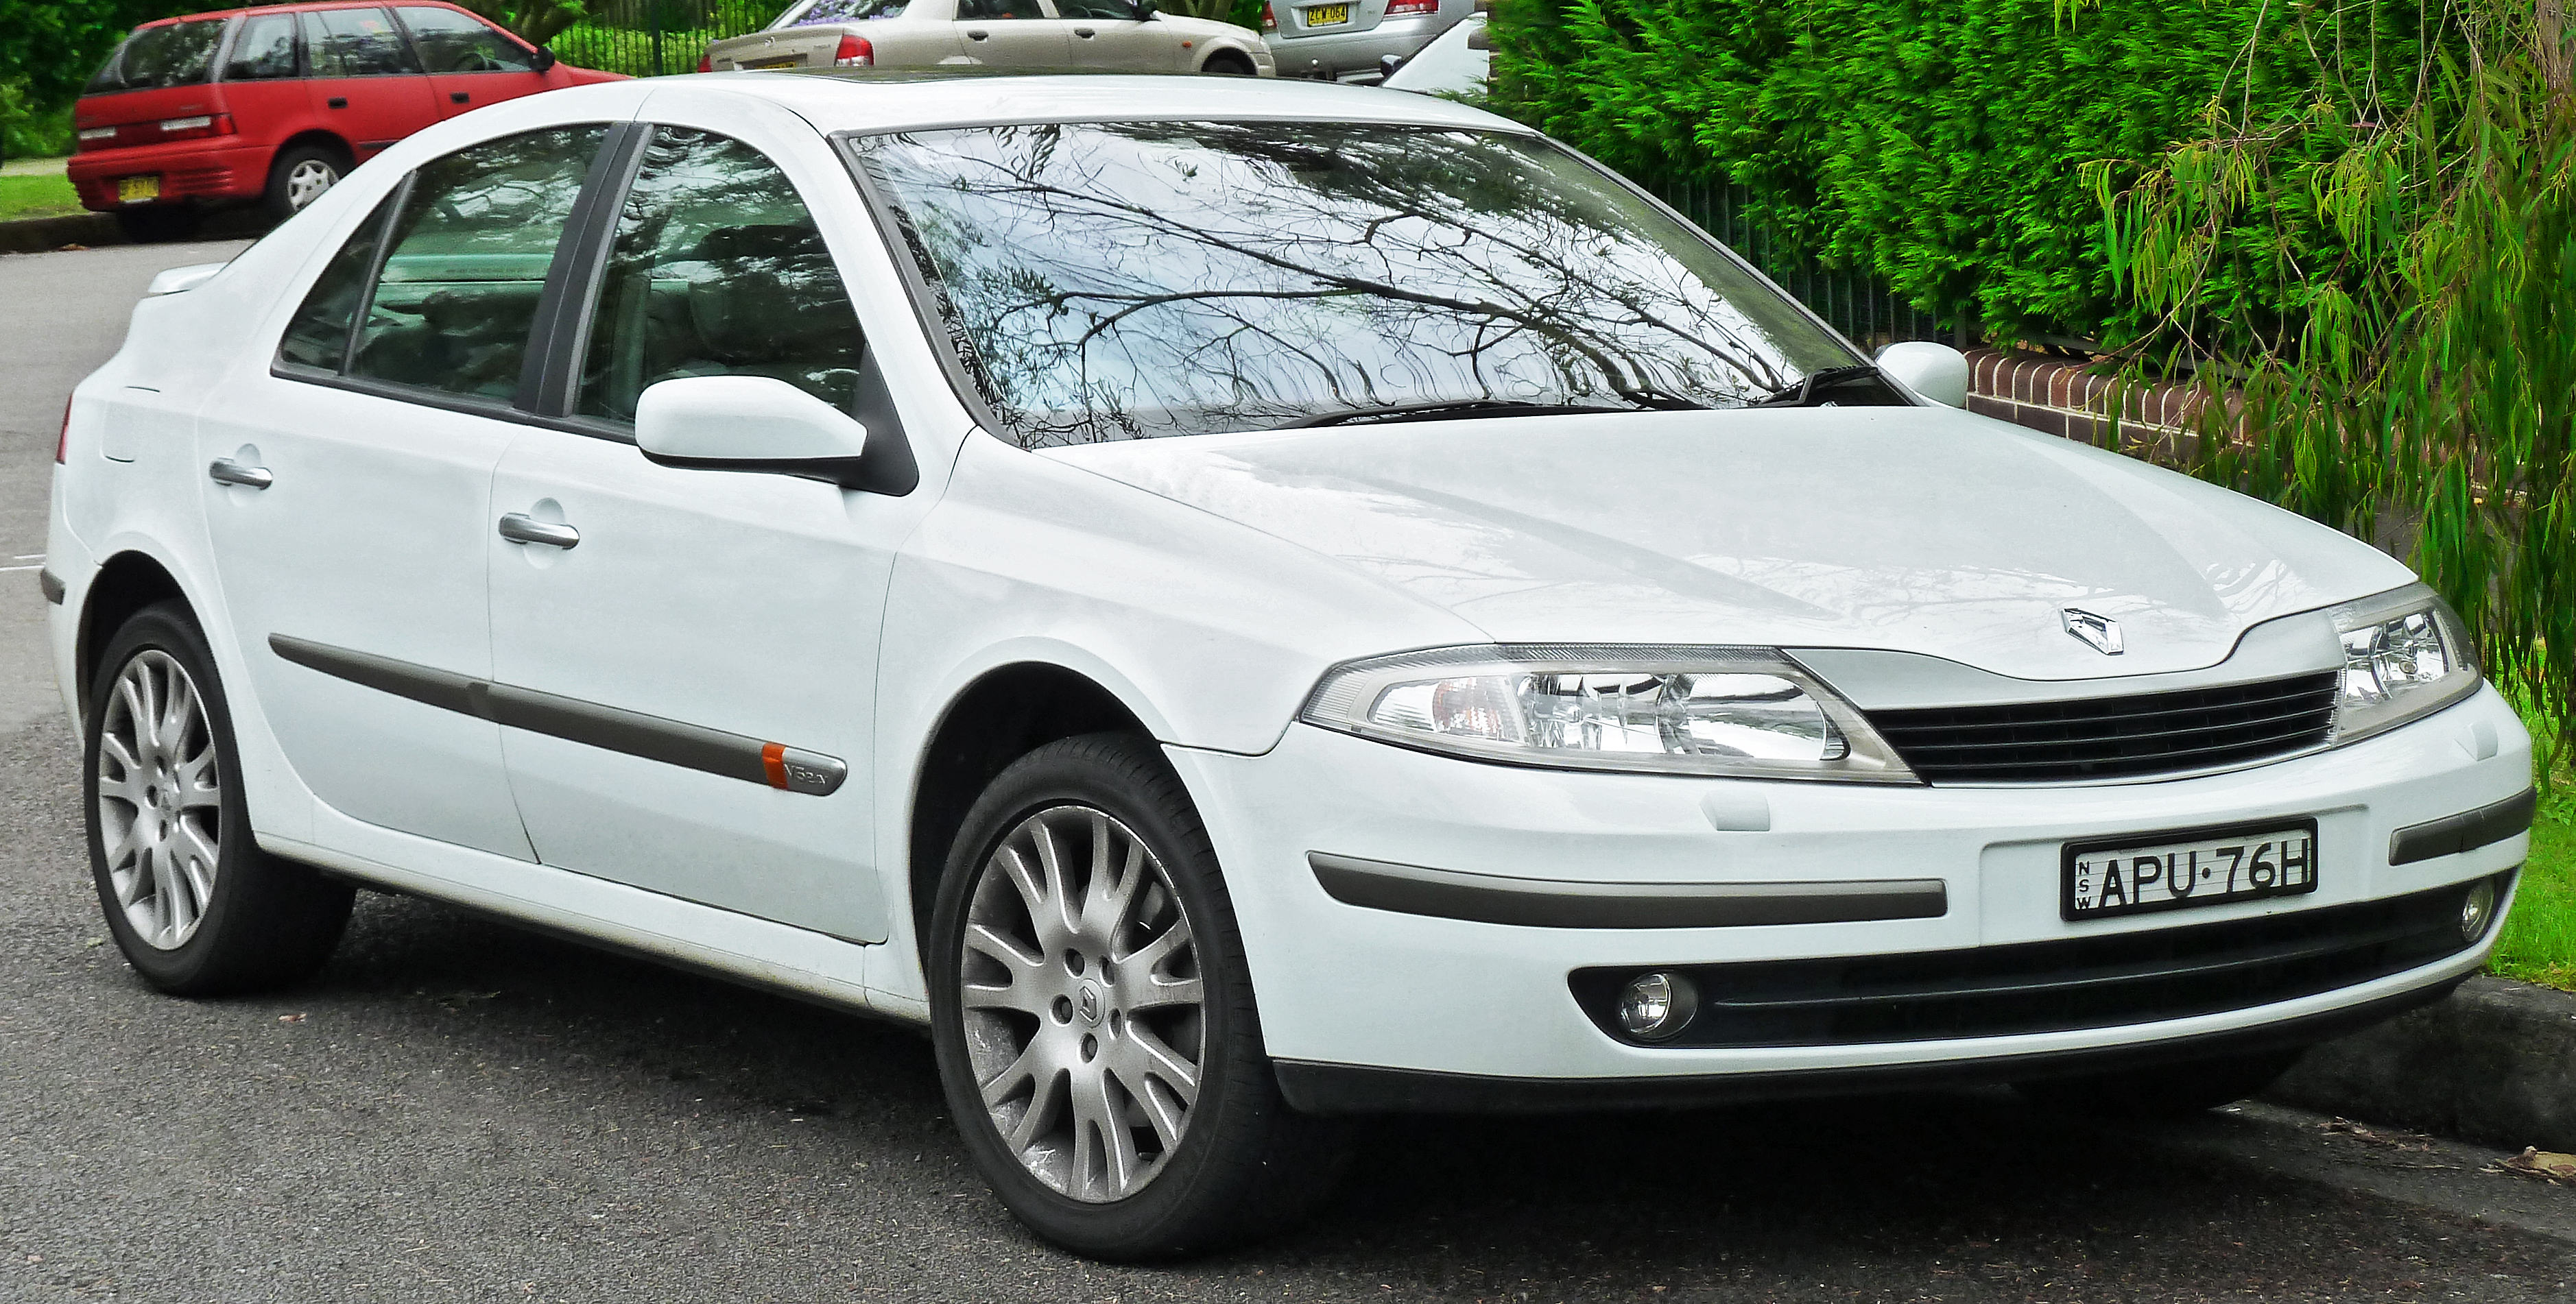 file 2003 renault laguna x74 privilege lx hatchback 2011 11 18 wikimedia commons. Black Bedroom Furniture Sets. Home Design Ideas